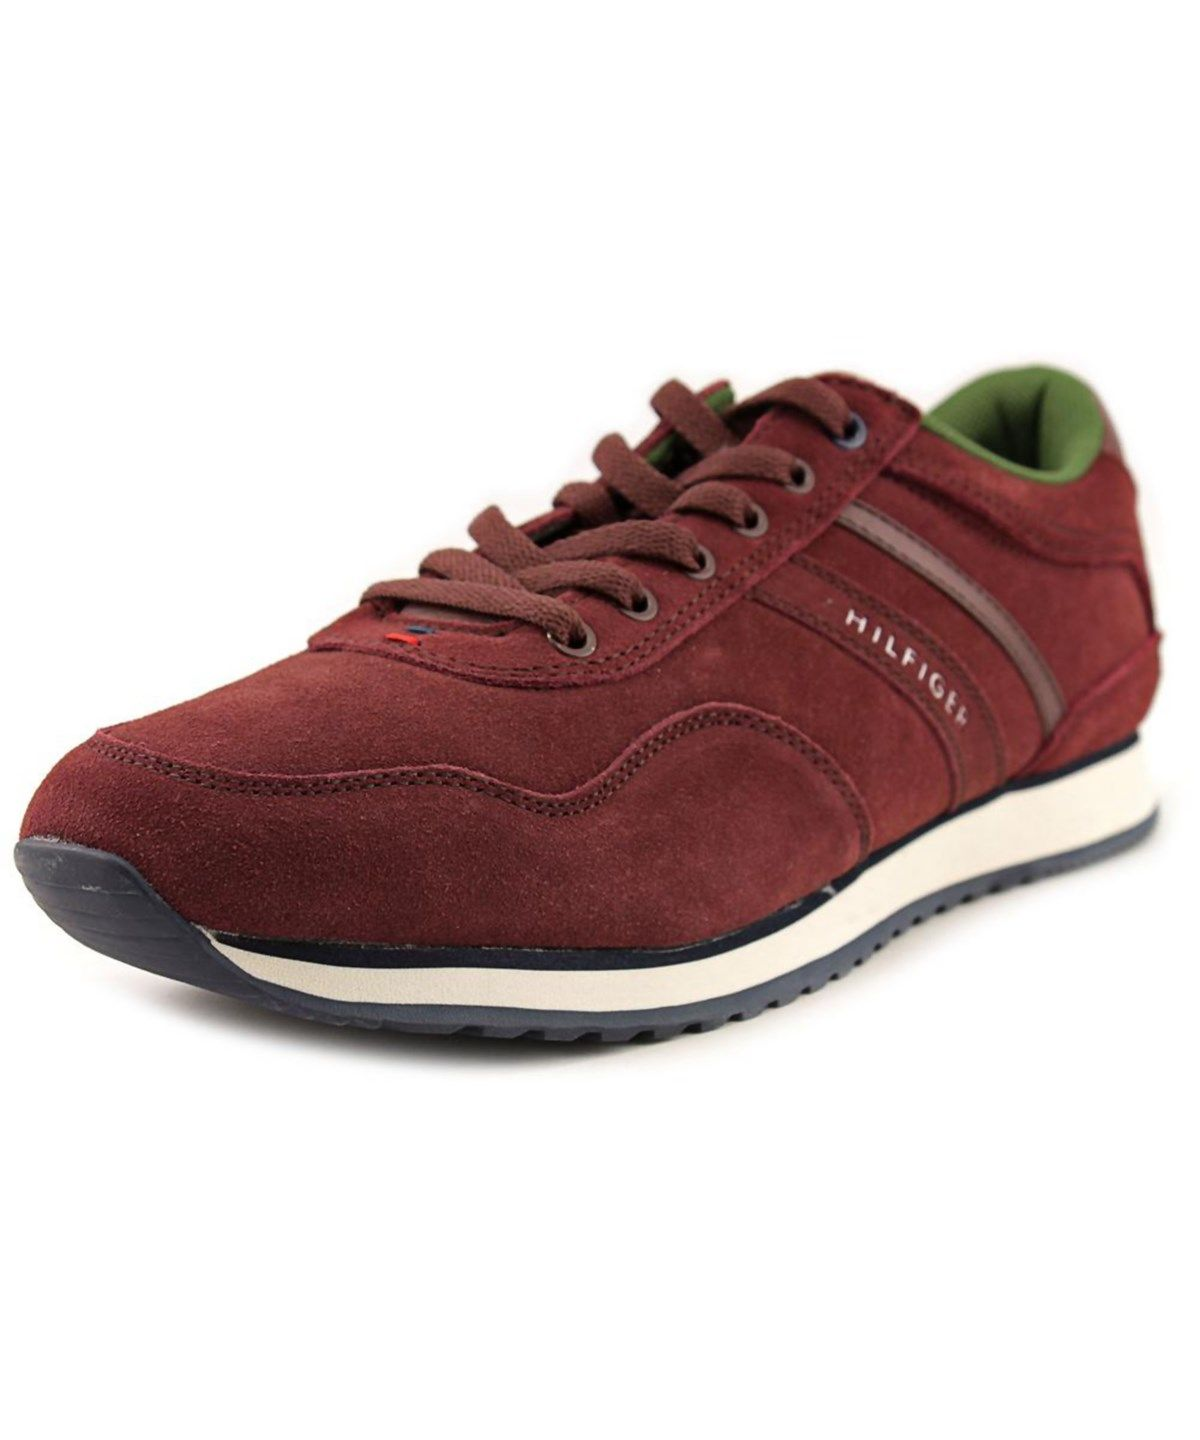 TOMMY HILFIGER TOMMY HILFIGER MARCUS 2   ROUND TOE SUEDE  SNEAKERS'. #tommyhilfiger #shoes #sneakers